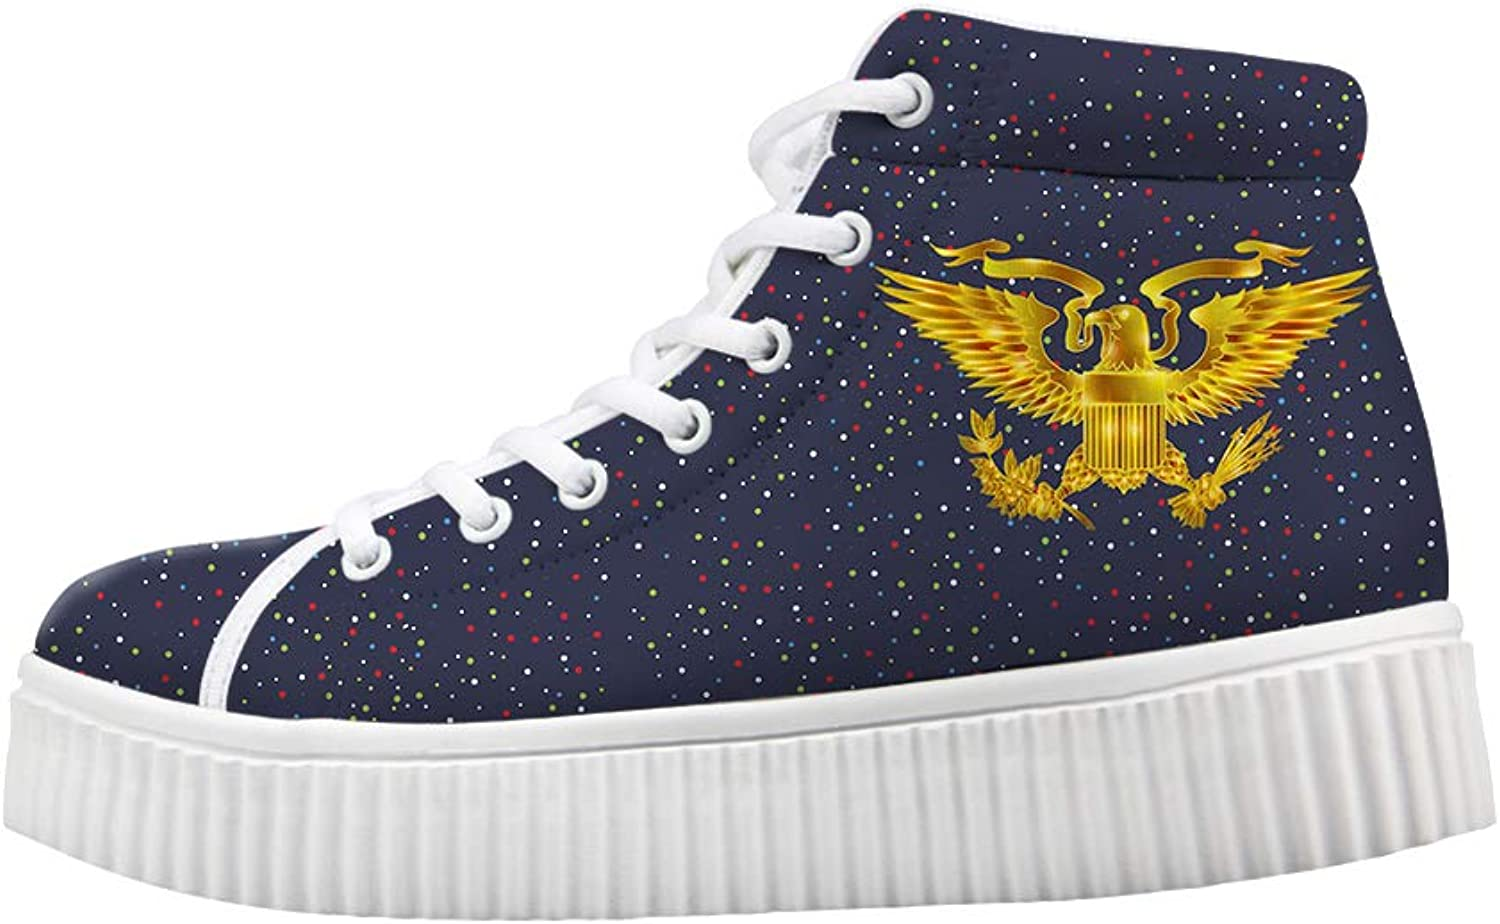 Owaheson Platform Lace up Sneaker Casual Chunky Walking shoes Women Glowing gold Presidential Seal